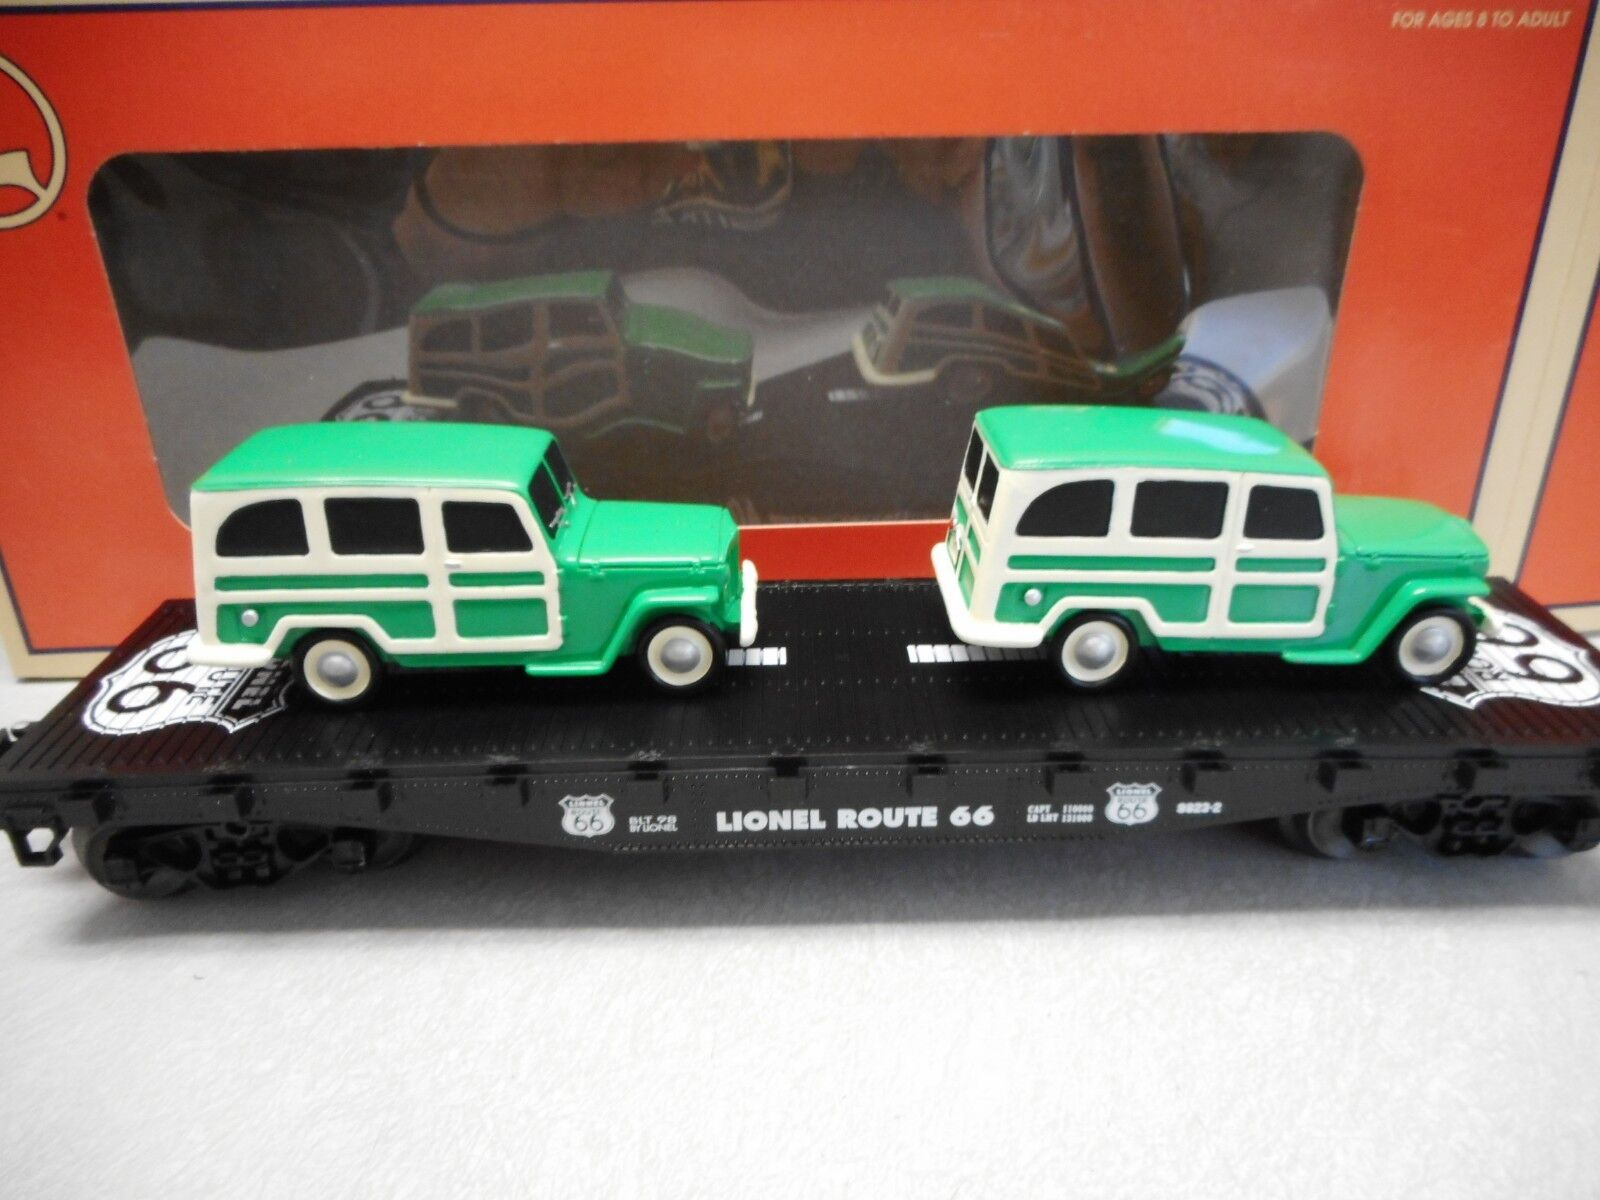 Lionel Route 66 Series Flatcar with Green Cream 1950's Wagons Std. O